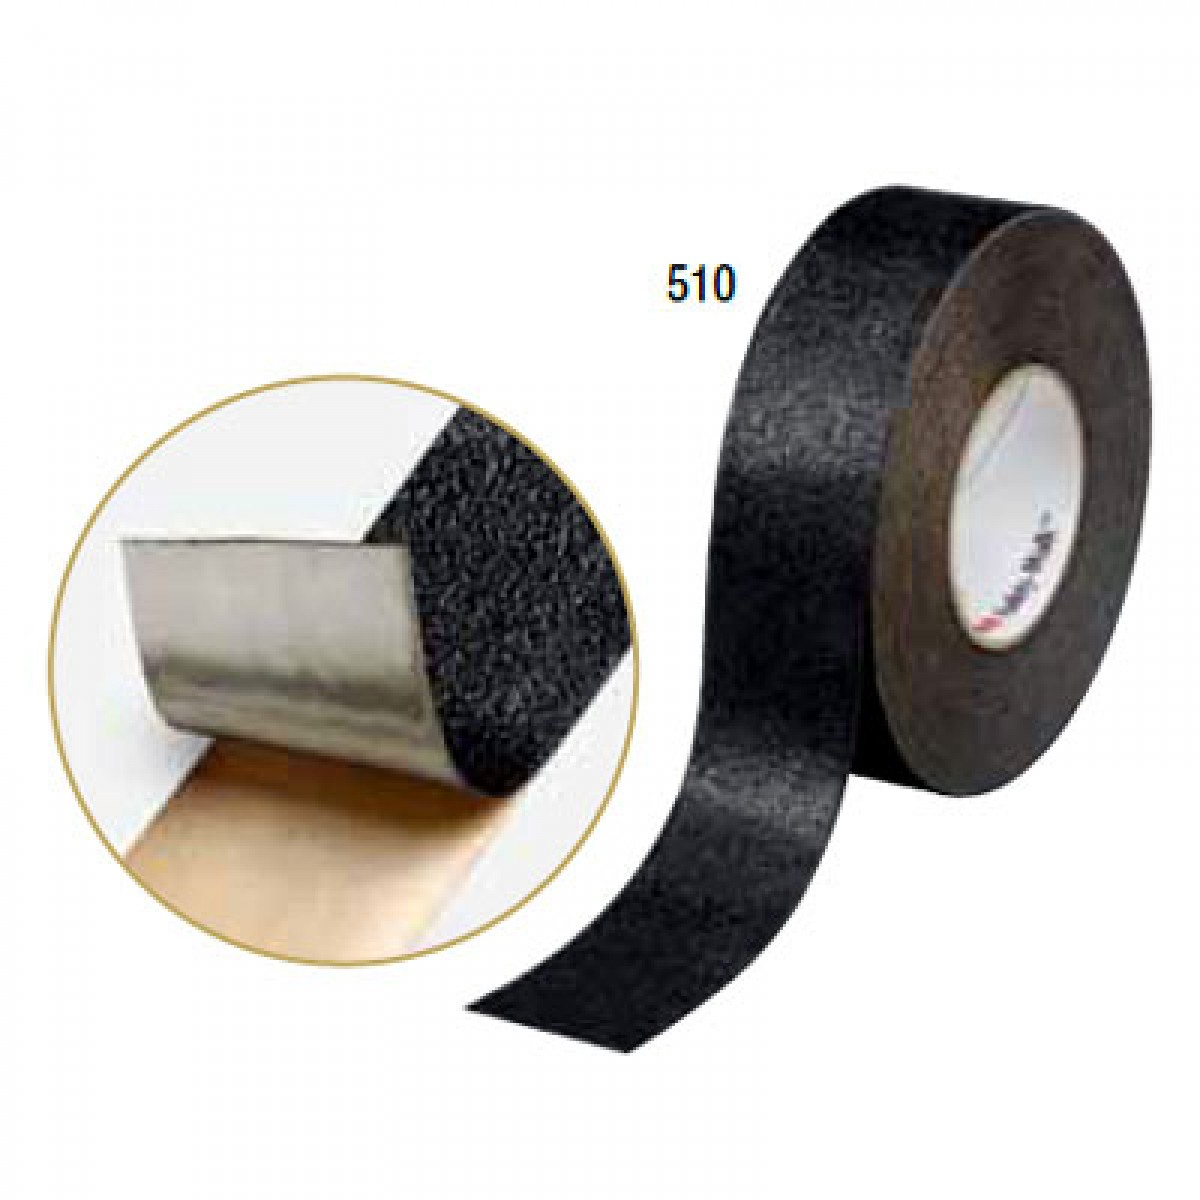 3m Products Australia 3m Safety Walk 500 Series Slip Resistant Conformable Tapes